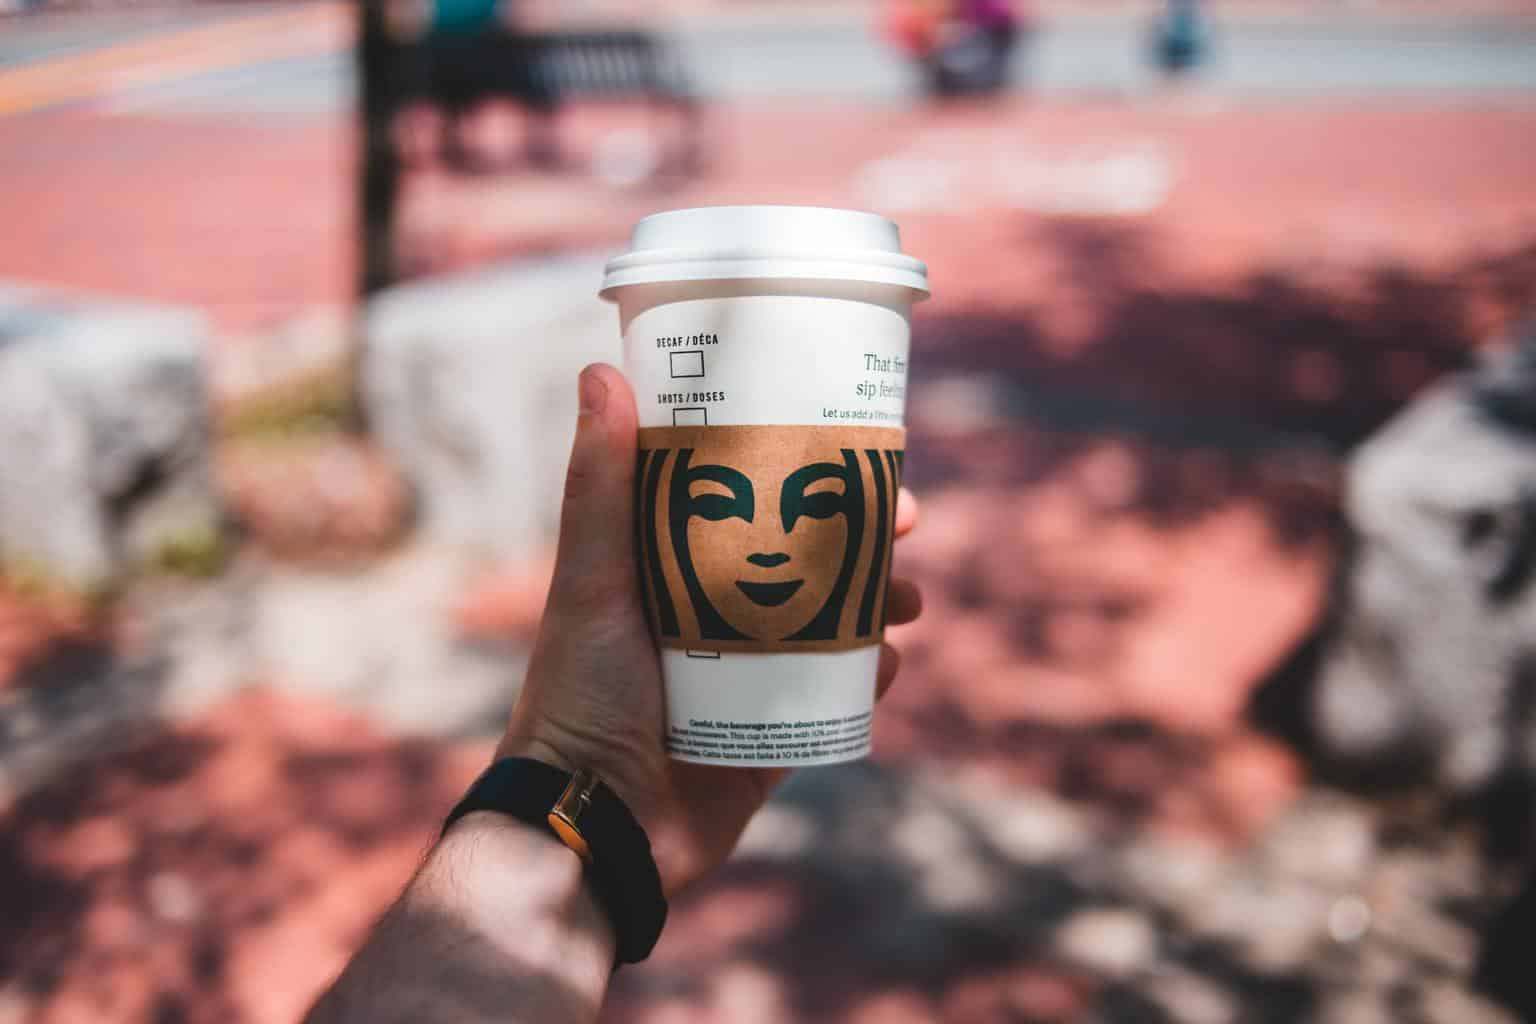 Influencers vs Brand Ambassadors: What is the True Value of Influencer Marketing?